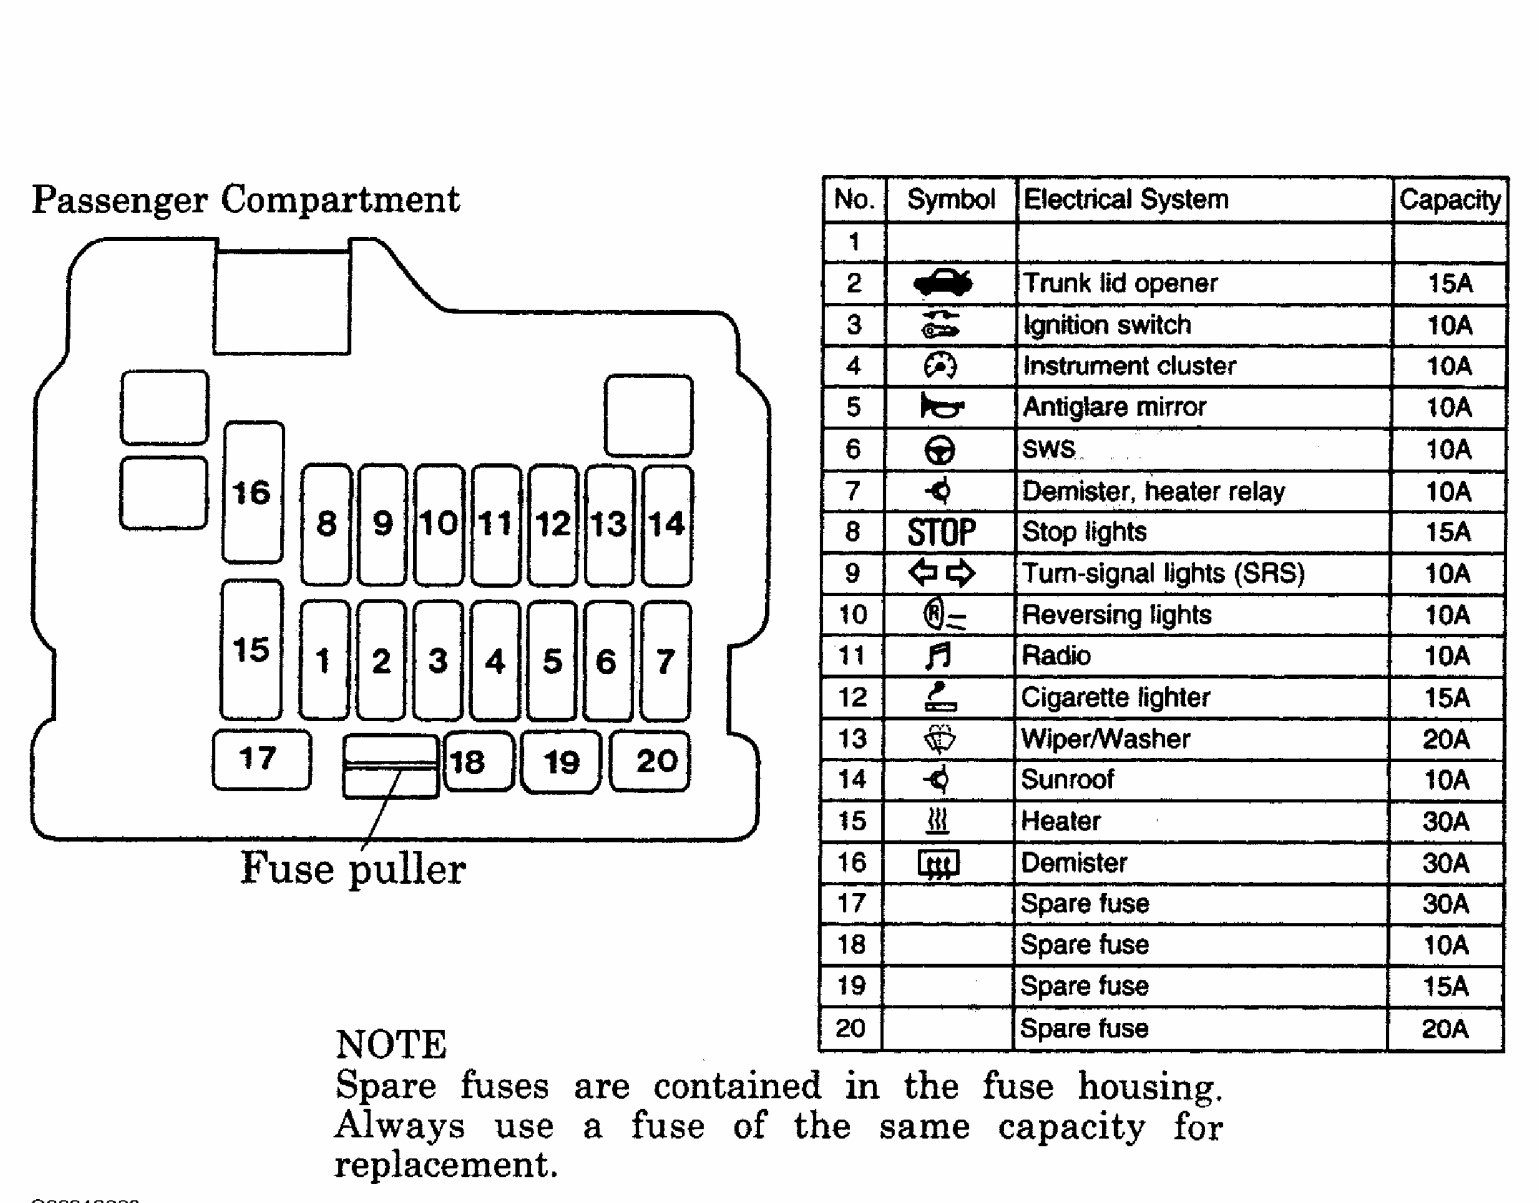 2003 Mitsubishi Fuse Box Diagram - wiring diagram load-solid -  load-solid.comune-farini-pc.itComune di Farini